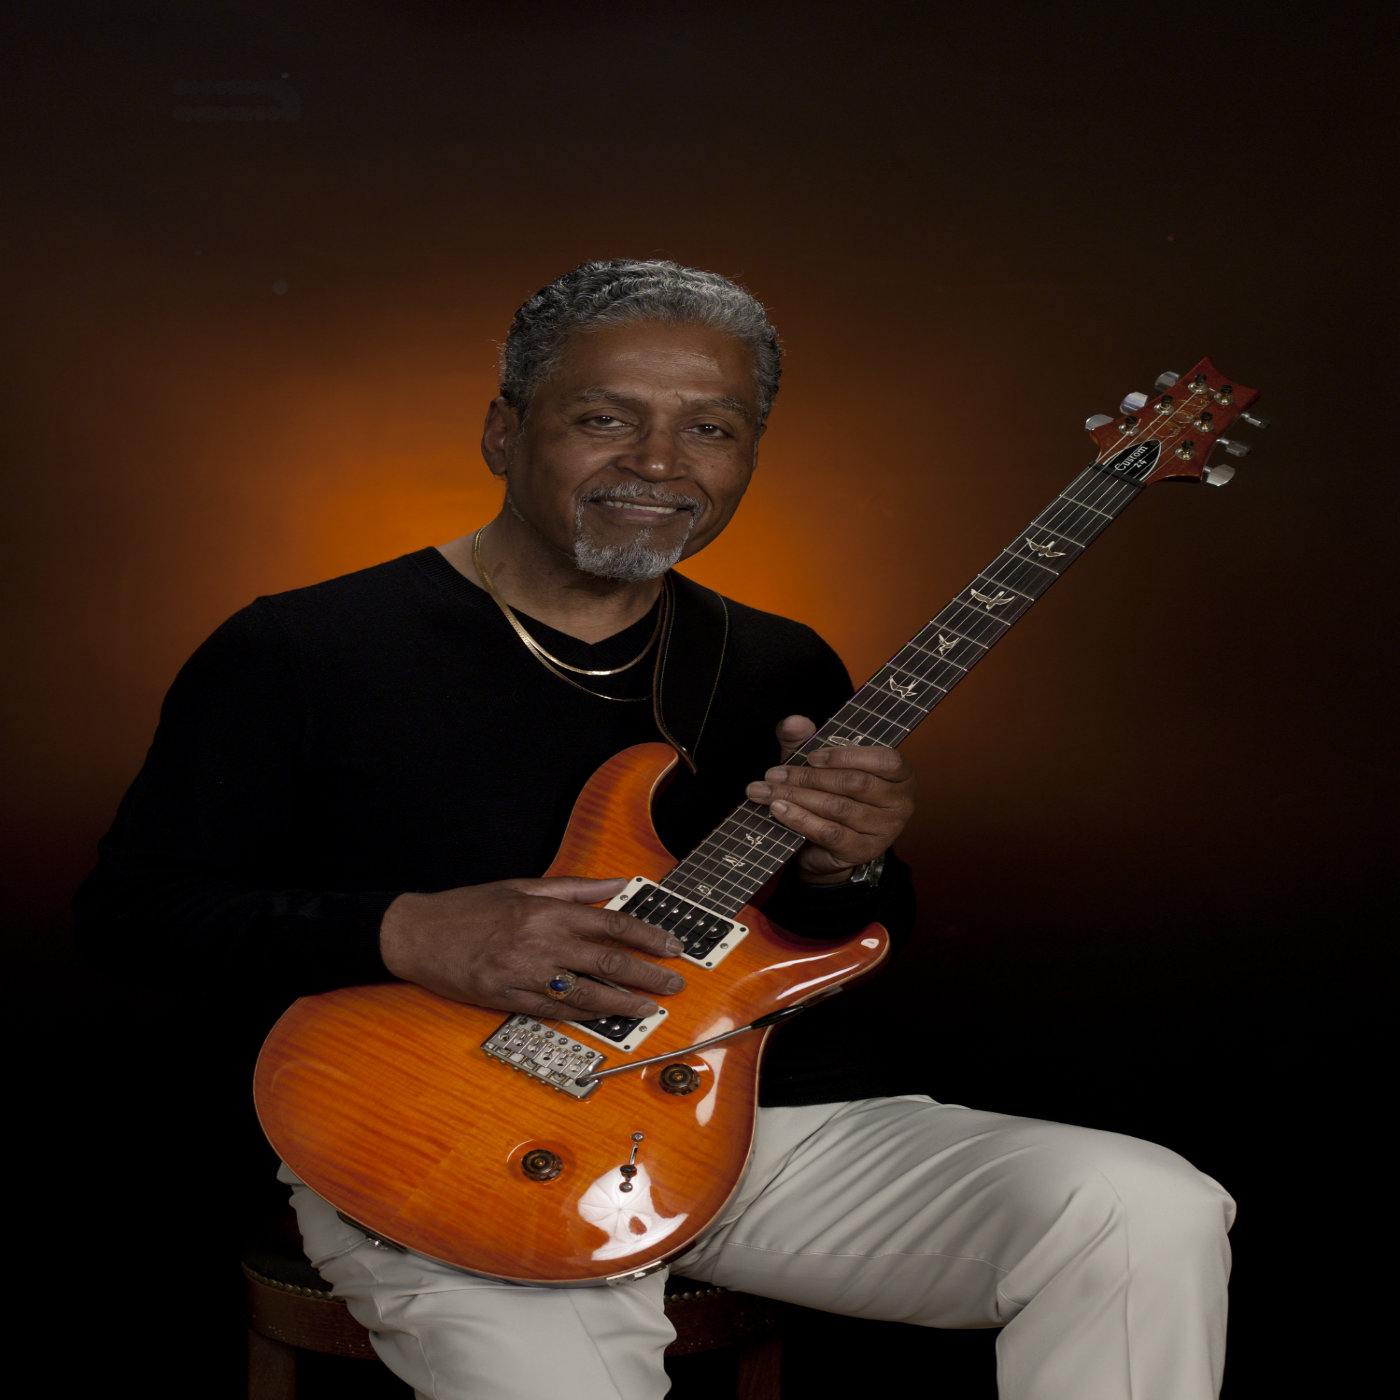 Introducing Smooth Jazz Guitarist James Greene